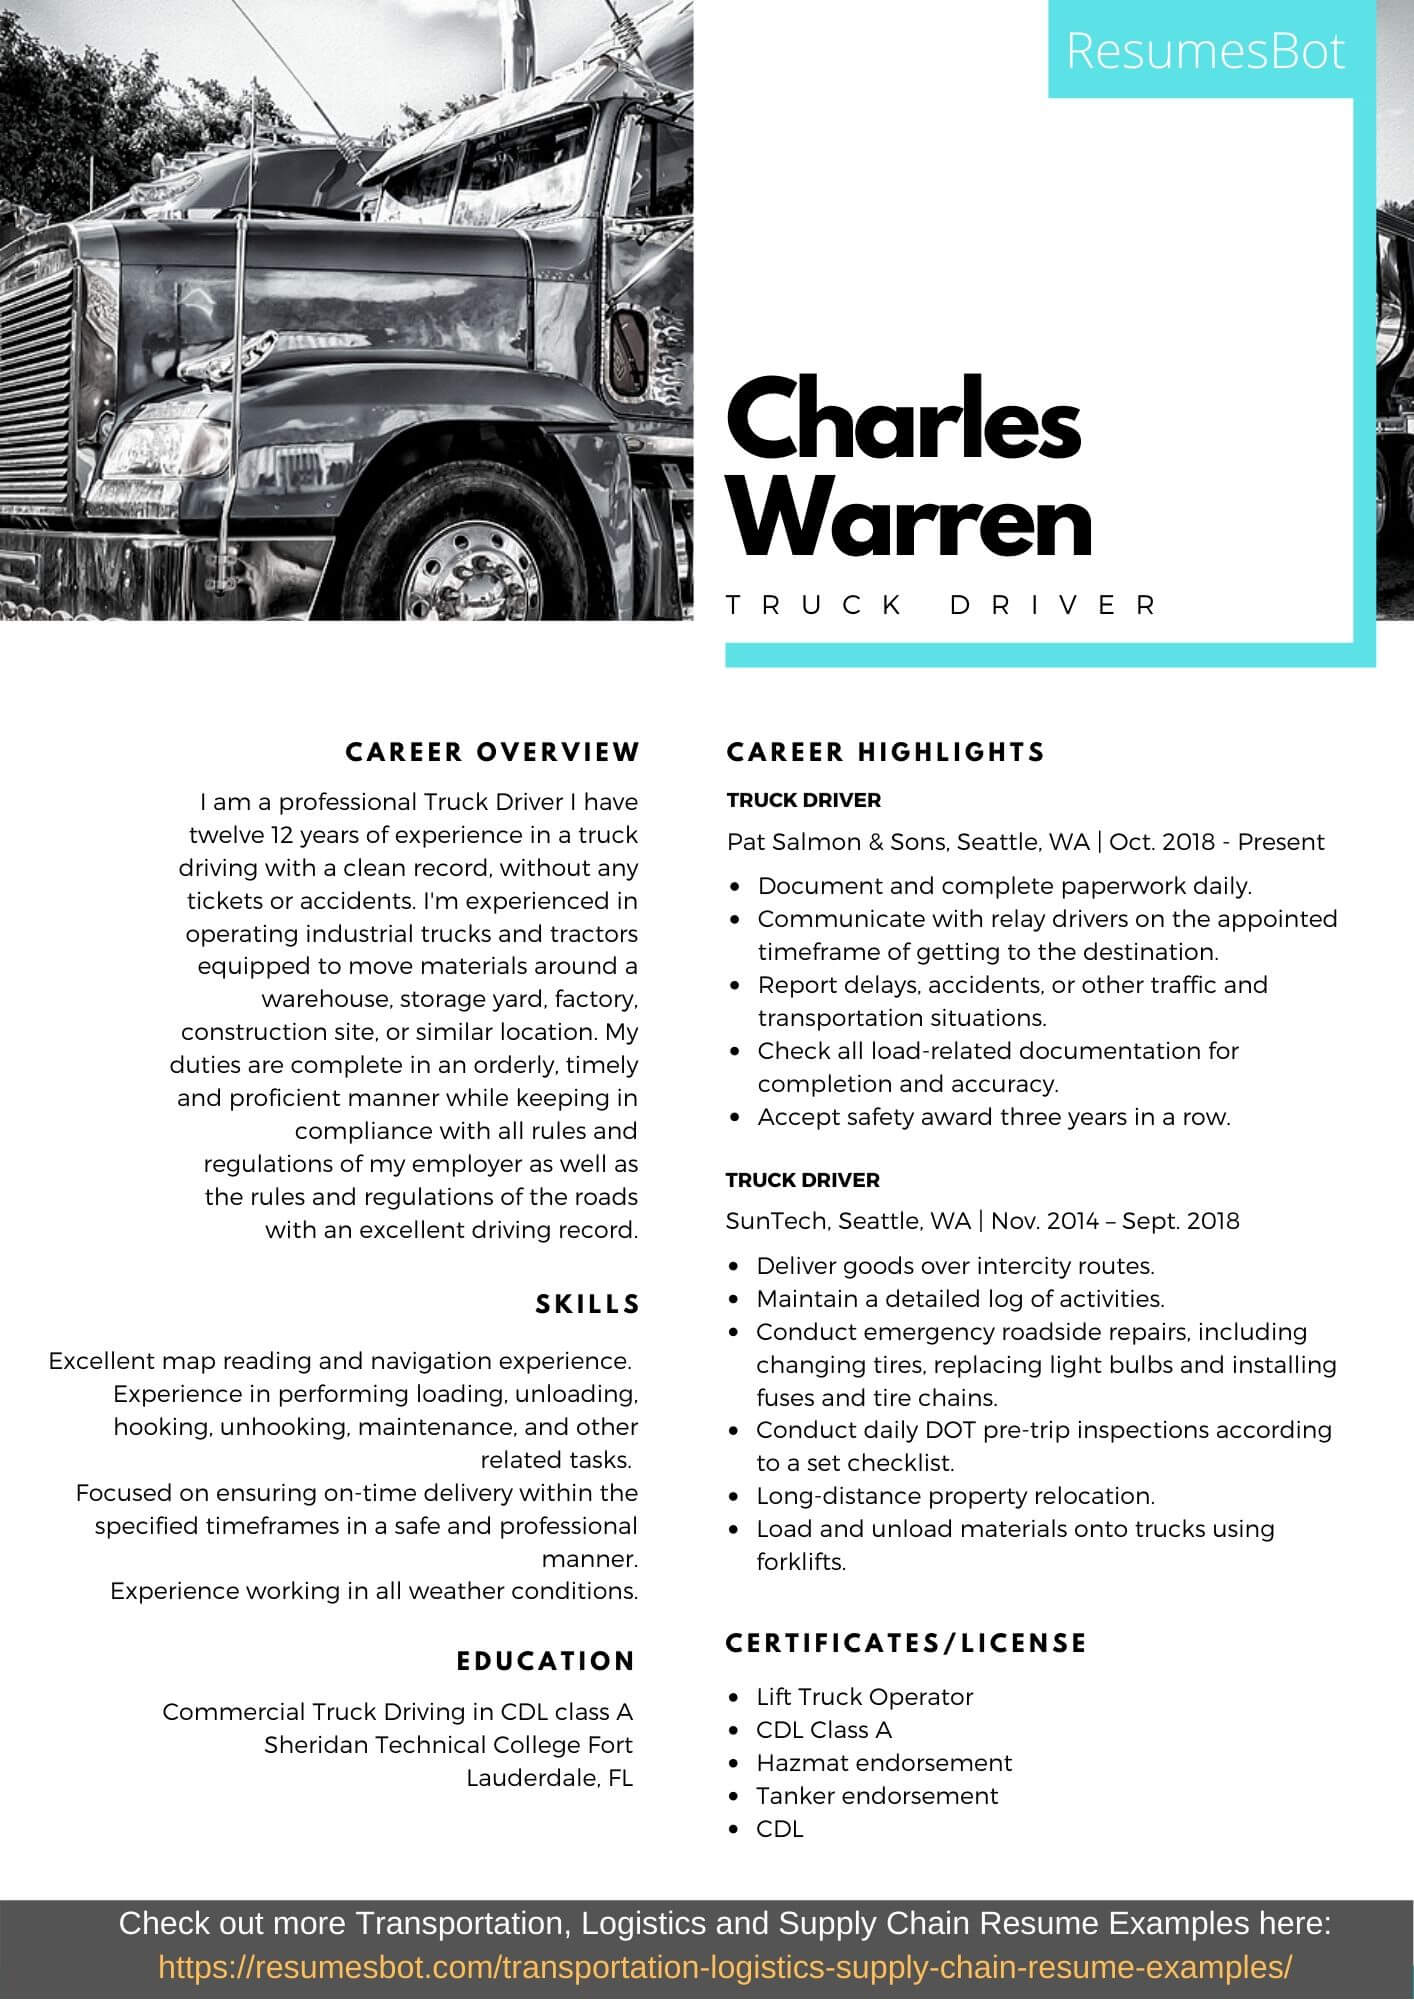 truck driver resume samples and tips pdf resumes bot haul sample example elegant template Resume Long Haul Truck Driver Resume Sample